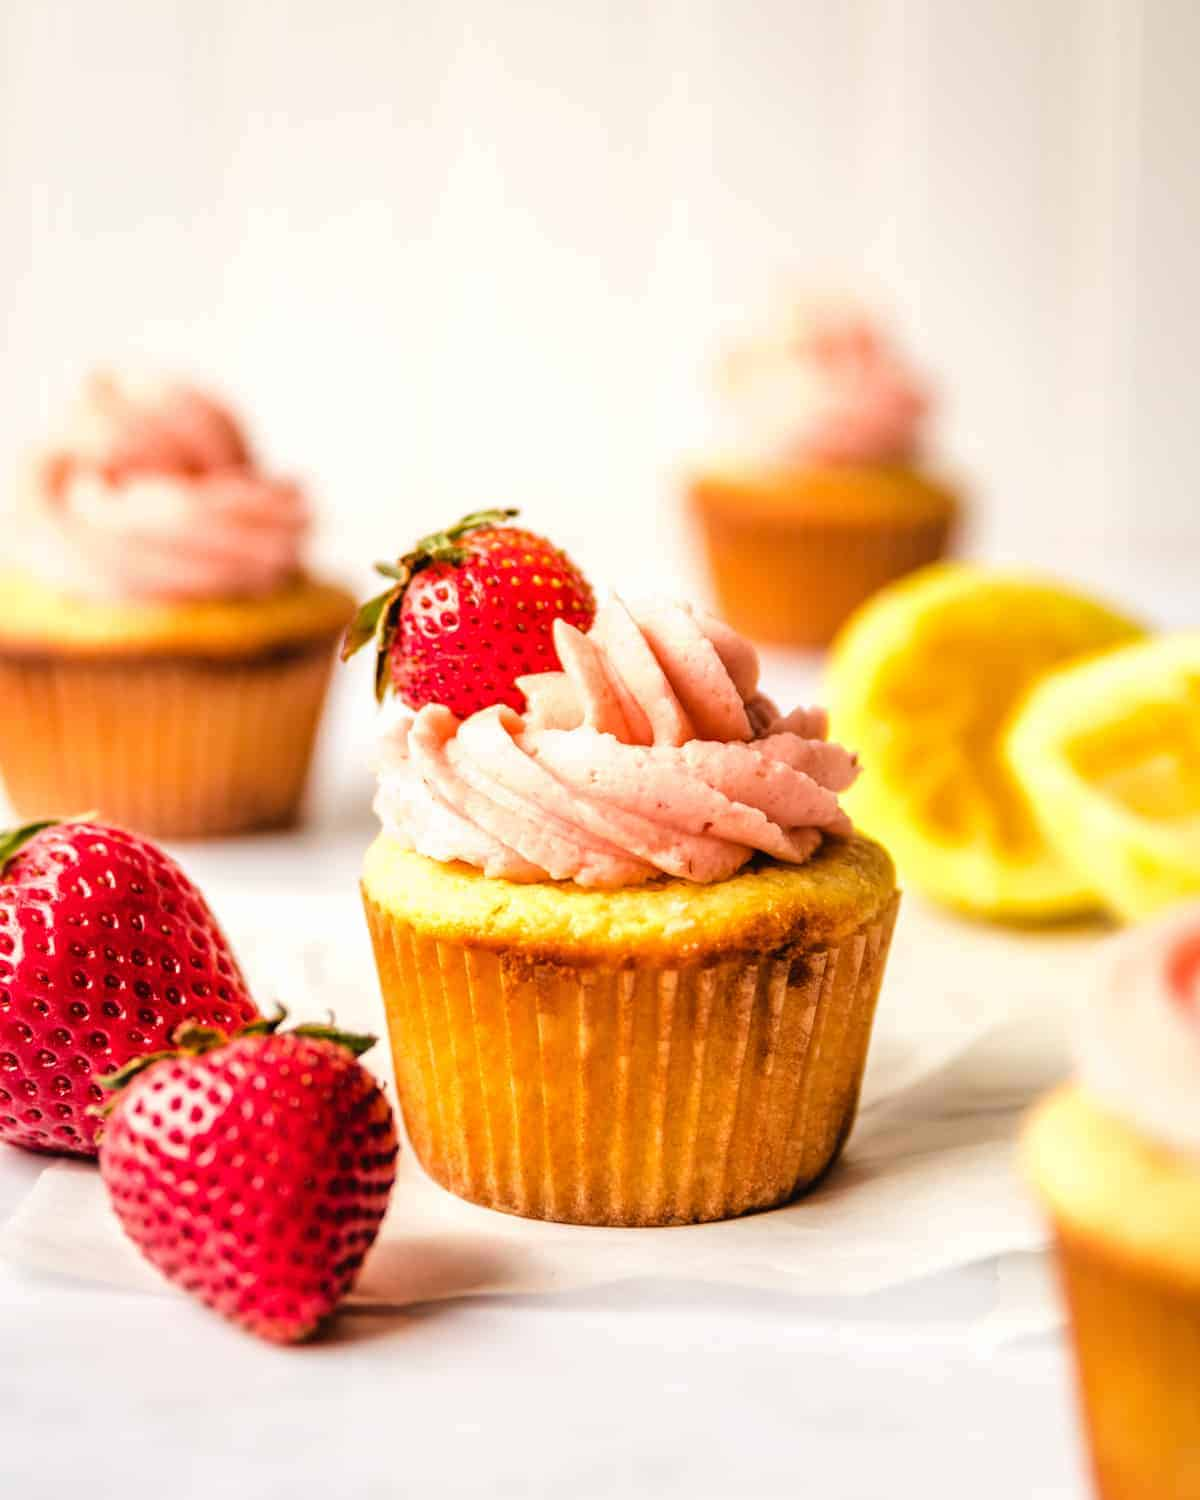 cupcake with frosting and strawberry on top with other cupcakes